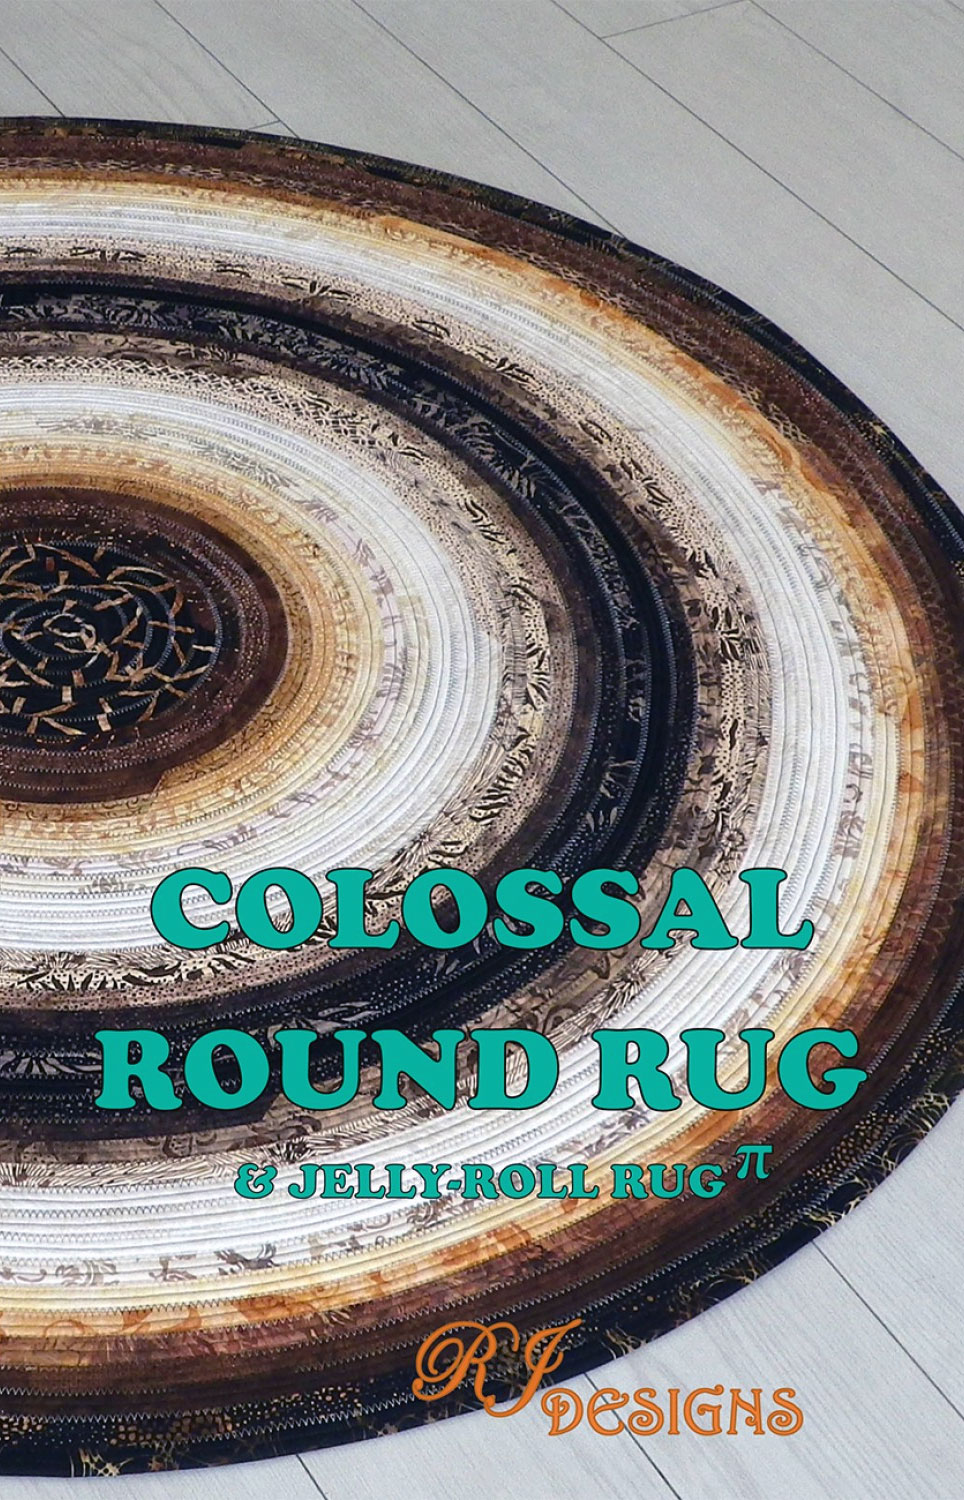 INVENTORY REDUCTION -- Colossal Round Jelly Roll Rug sewing pattern from RJ Designs